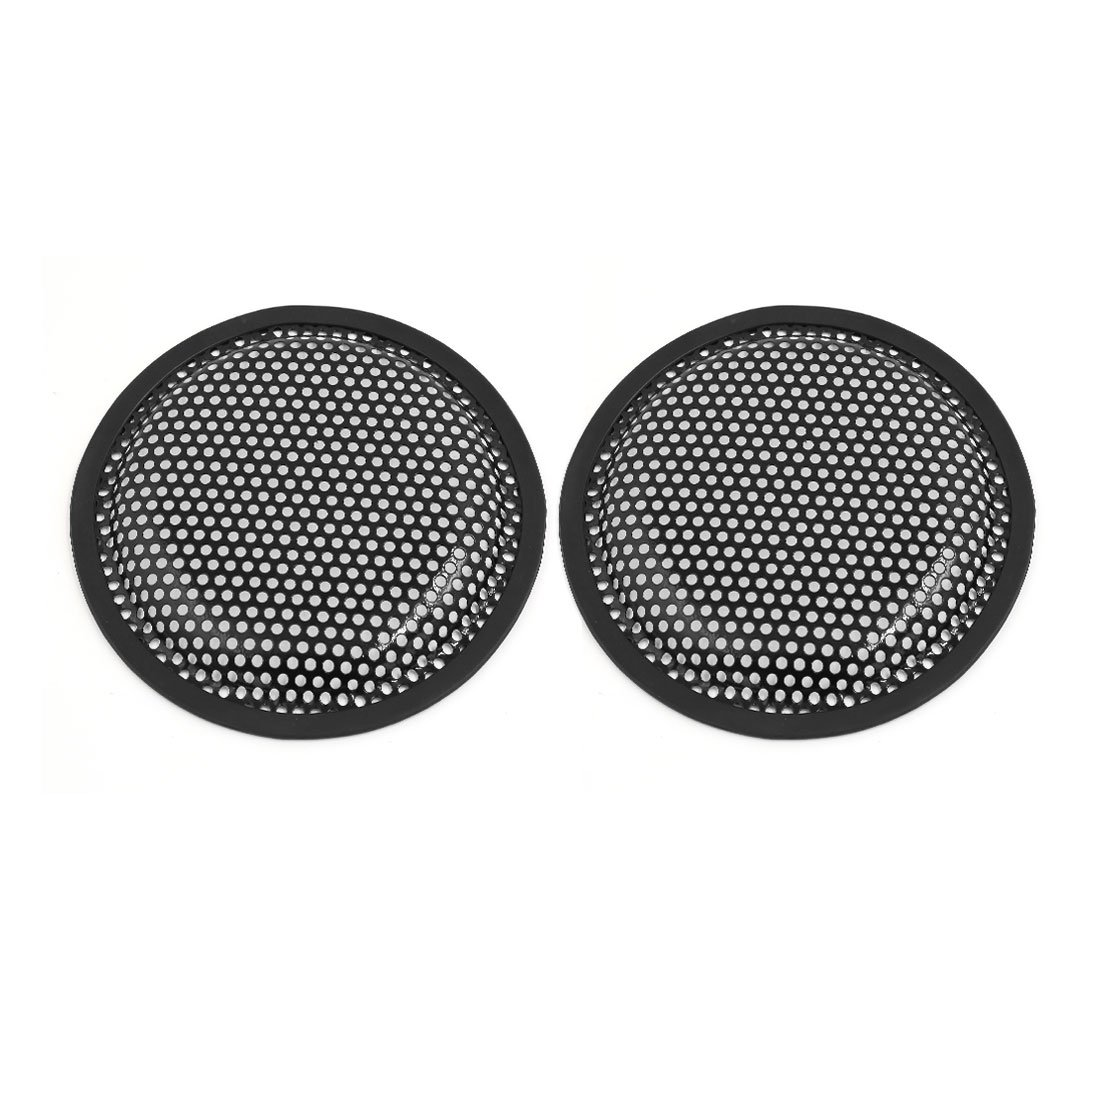 uxcell a16010800ux0165 2pcs 6 inch Car Speaker Mesh Sub Woofer Subwoofer Grill Dust Cover, 2 Pack